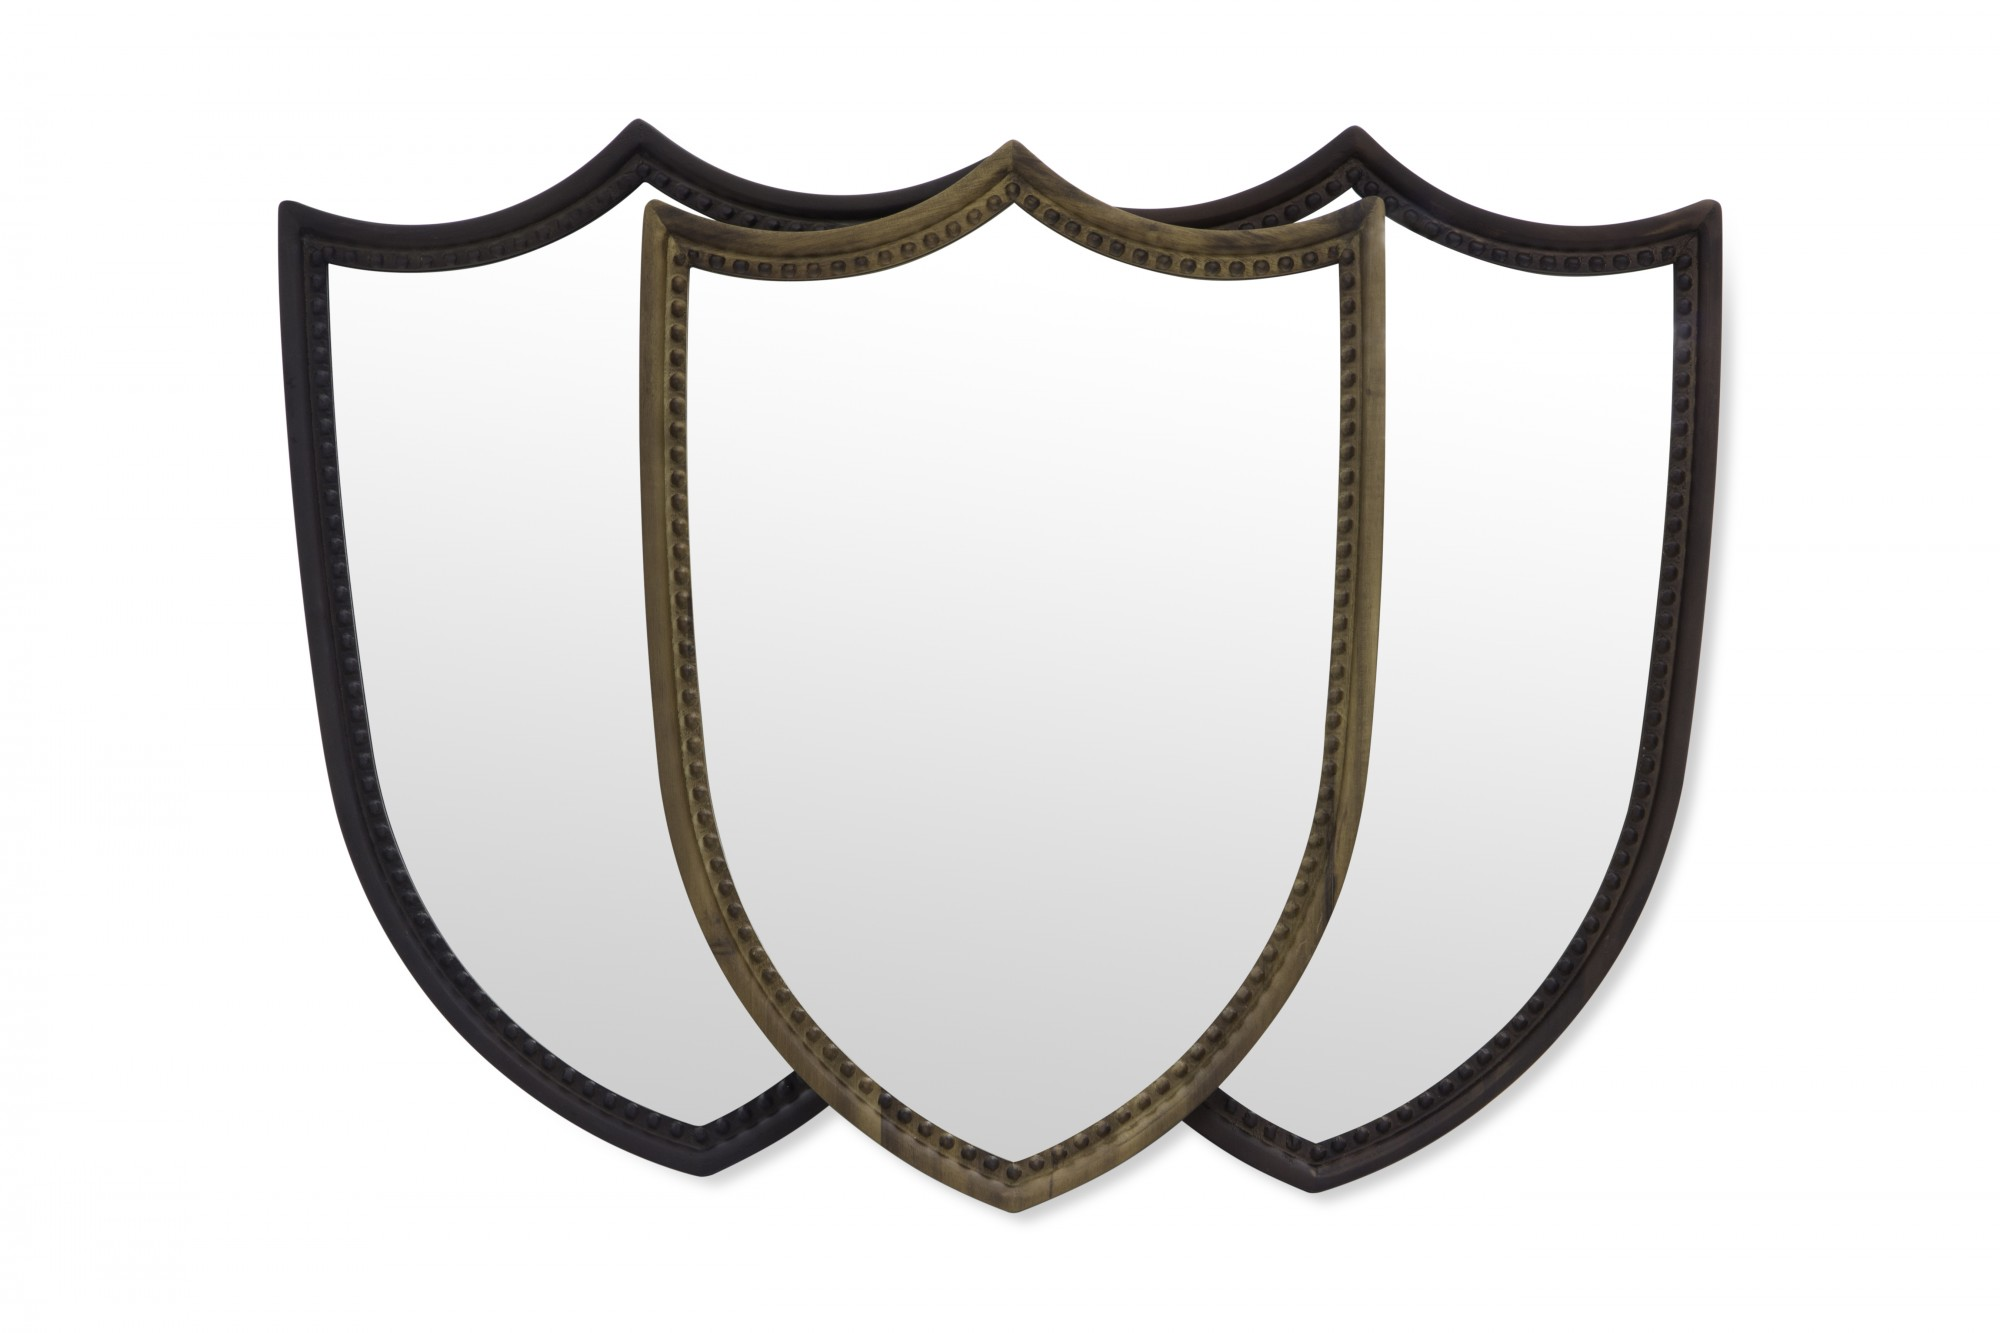 Shield shape mirror